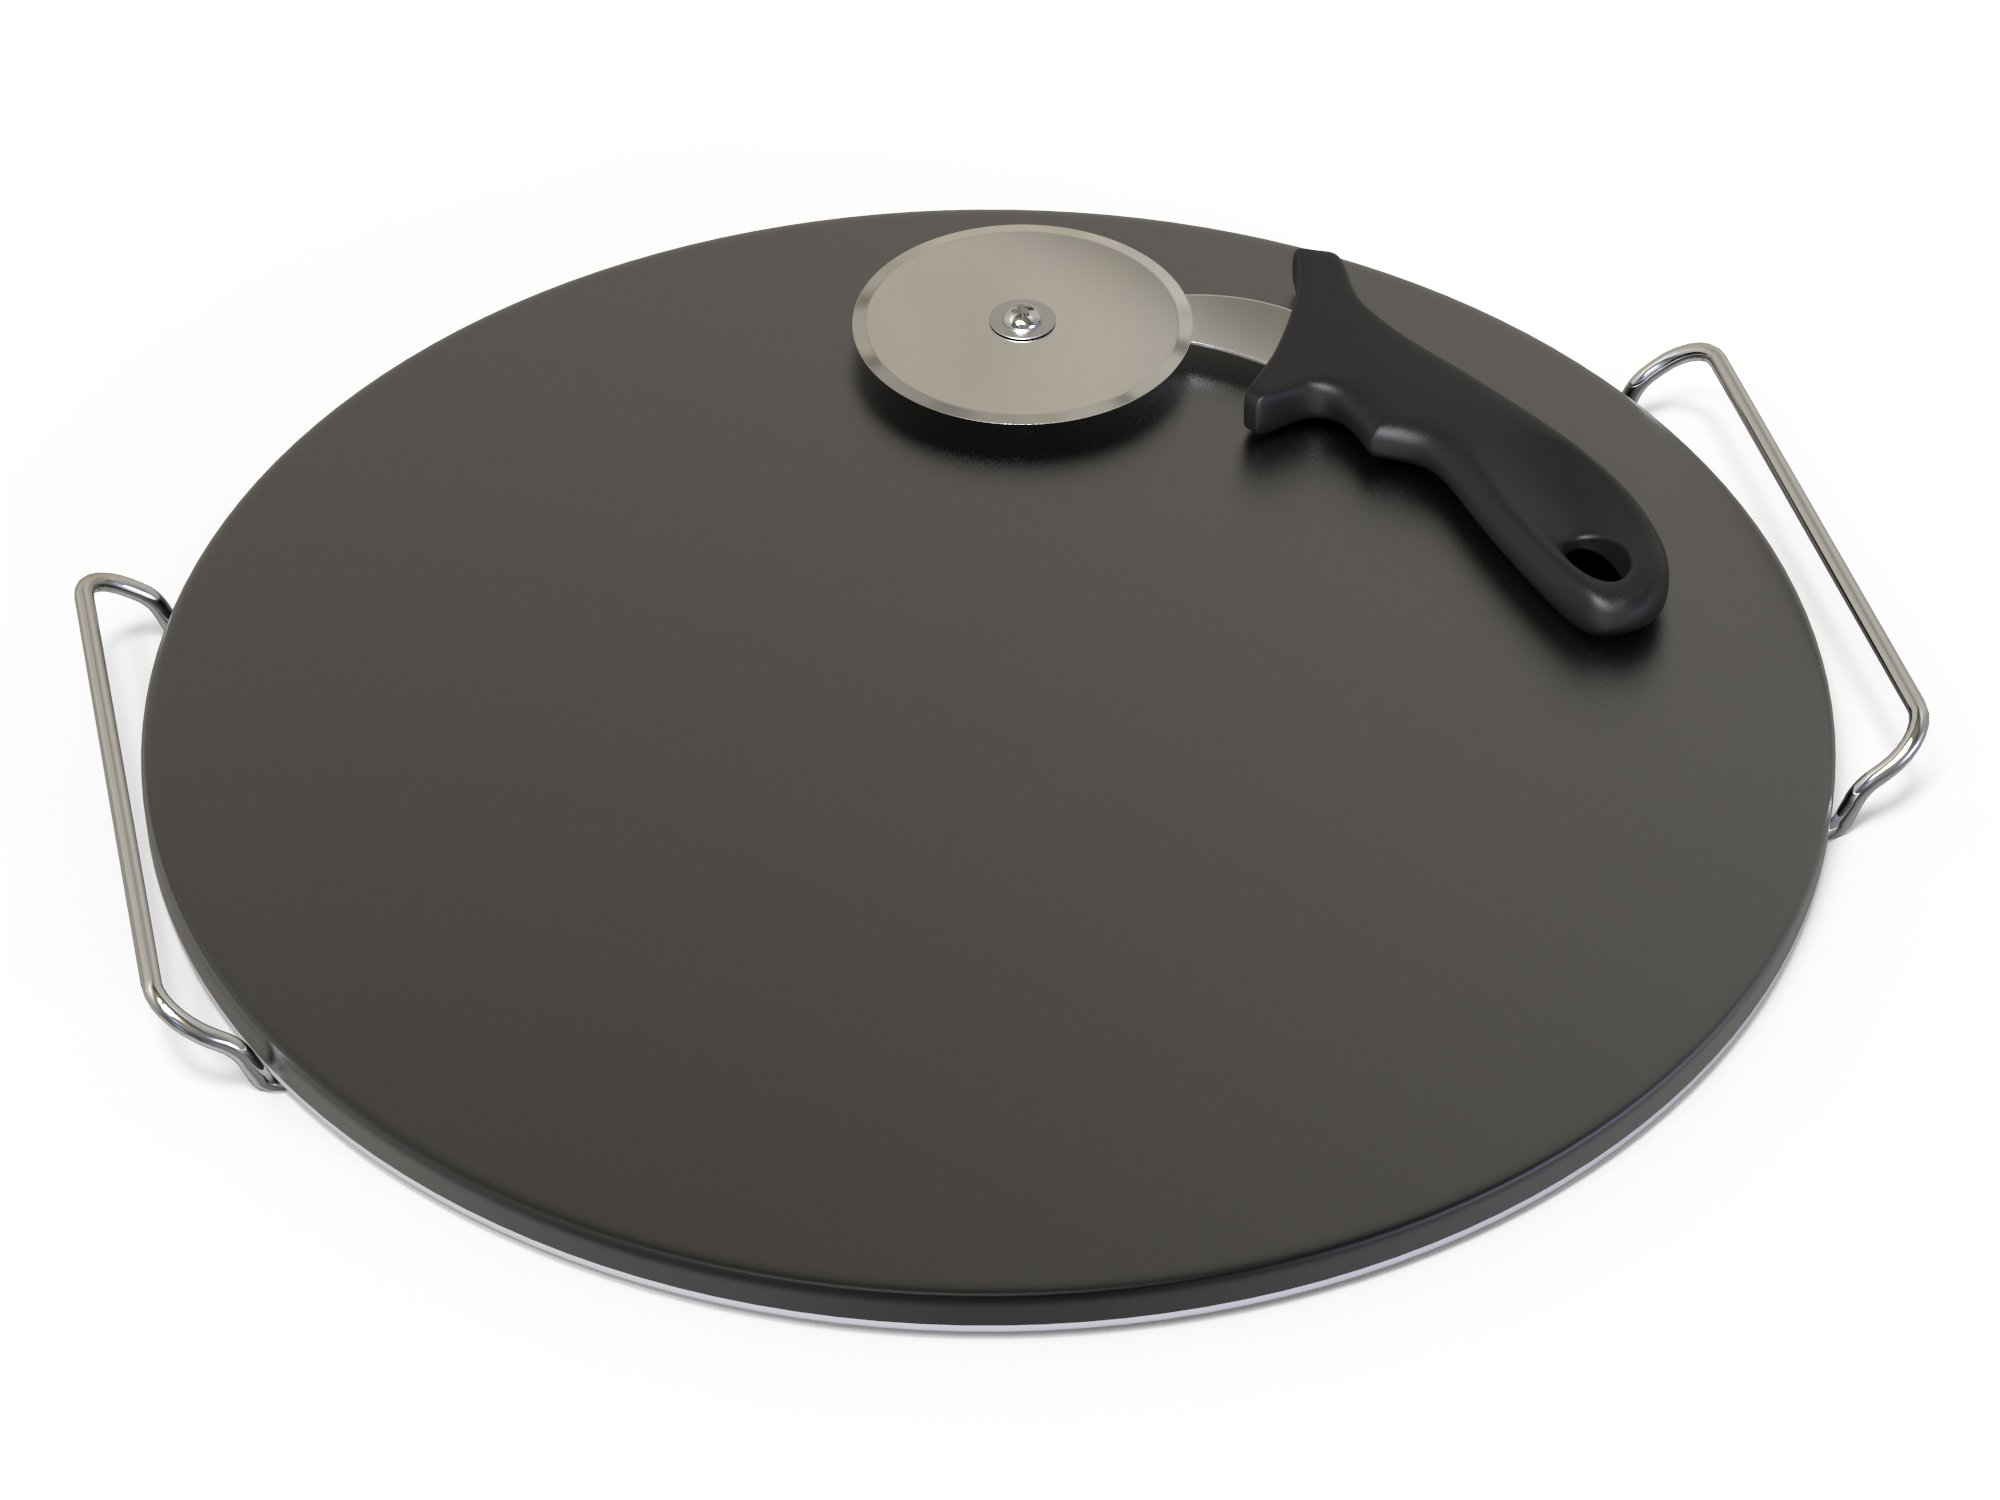 Durable Cordierite Pizza Stone Set — Baking Stones for Cooking, Grilling and BBQ — 15 inch Outdoor Round Glazed and Extra Thick Stone Pizza Kits With Free Pizza Slice Cutter and Iron Serving Rack